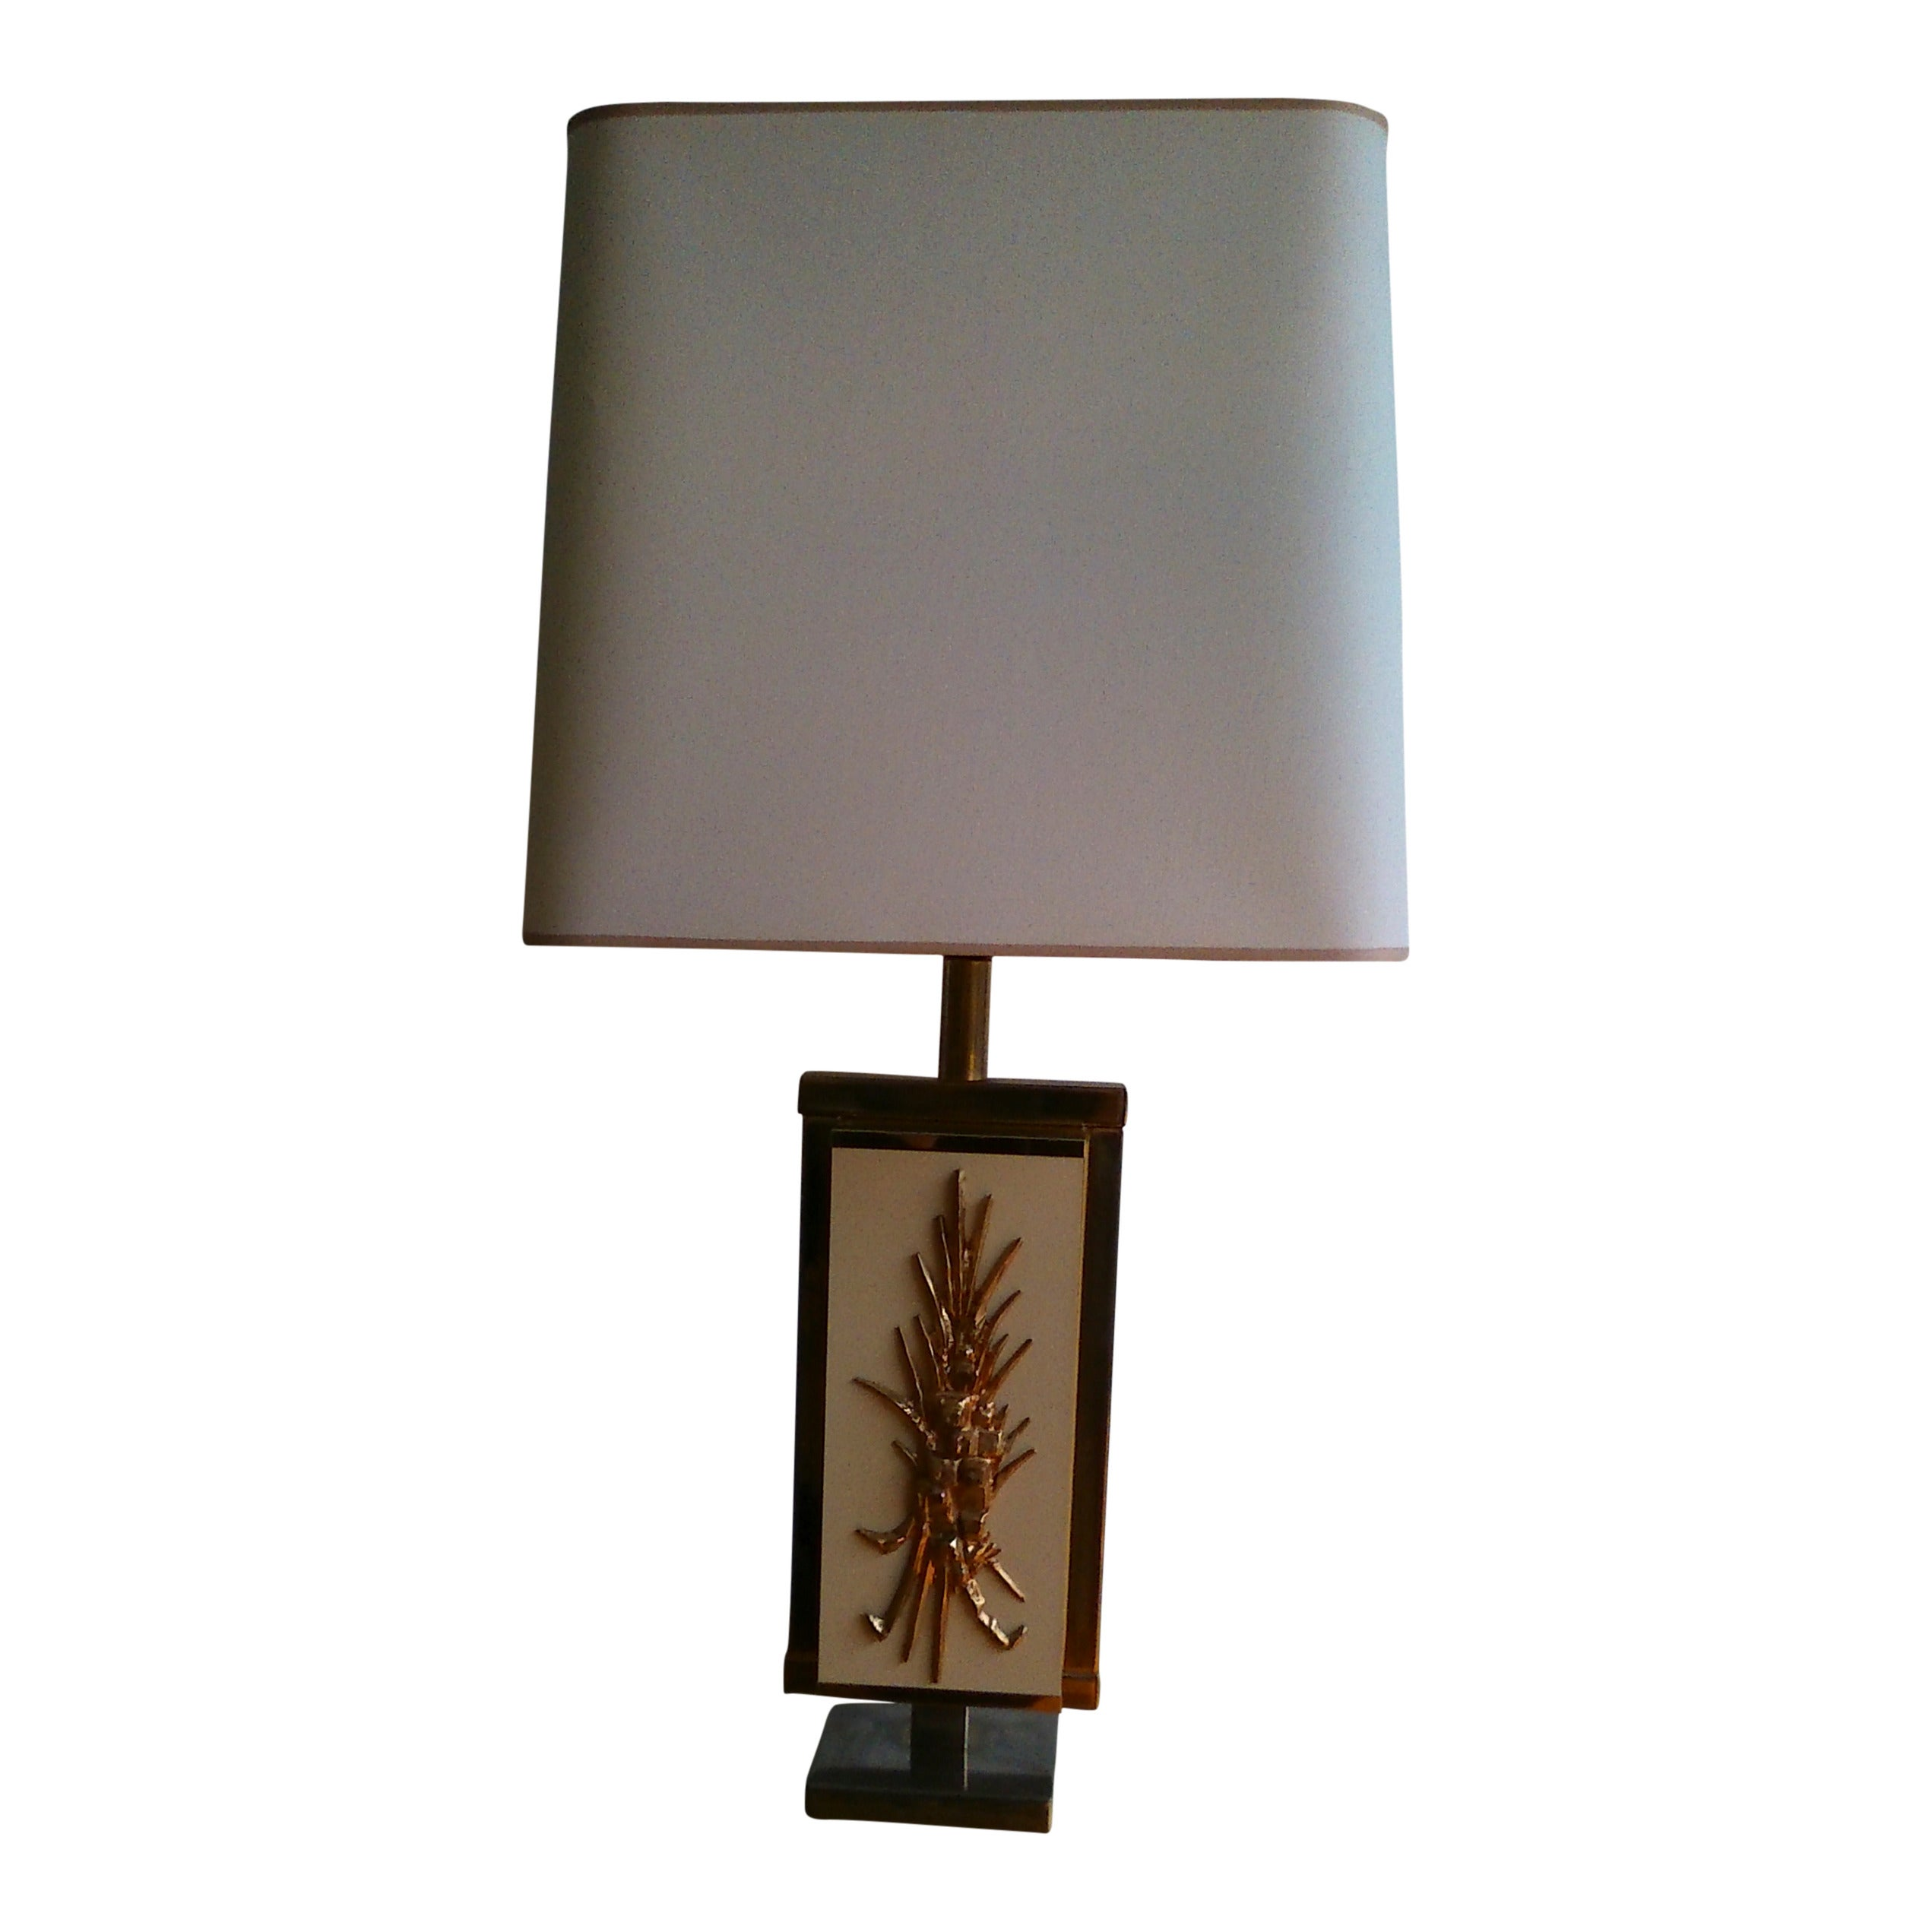 1970's brass and  beige lacquered melamine lamp - France - Ipso Facto